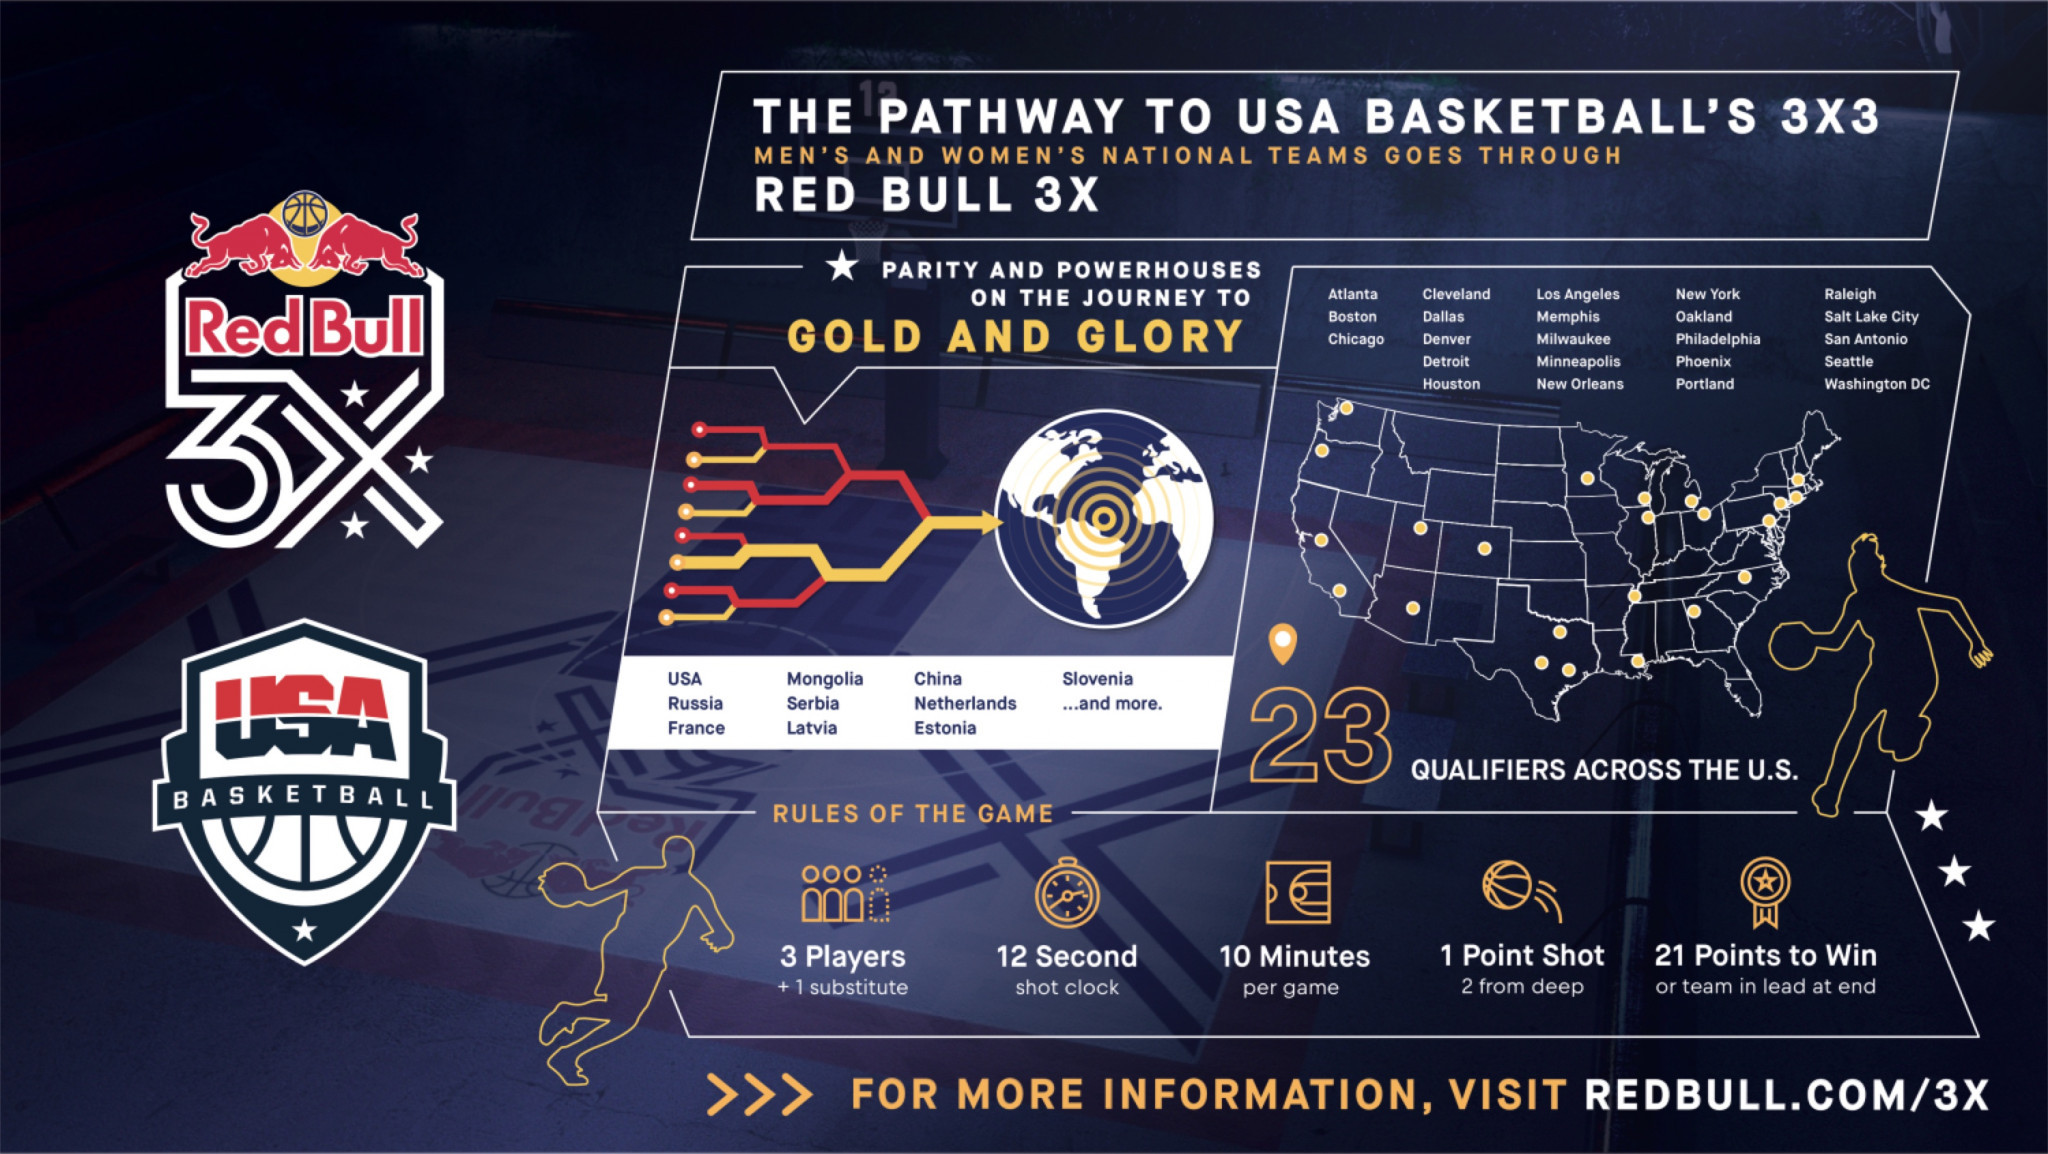 USA Basketball has revealed details of how players qualify to represent the country in 3x3 at Tokyo 2020 ©USA Basketball